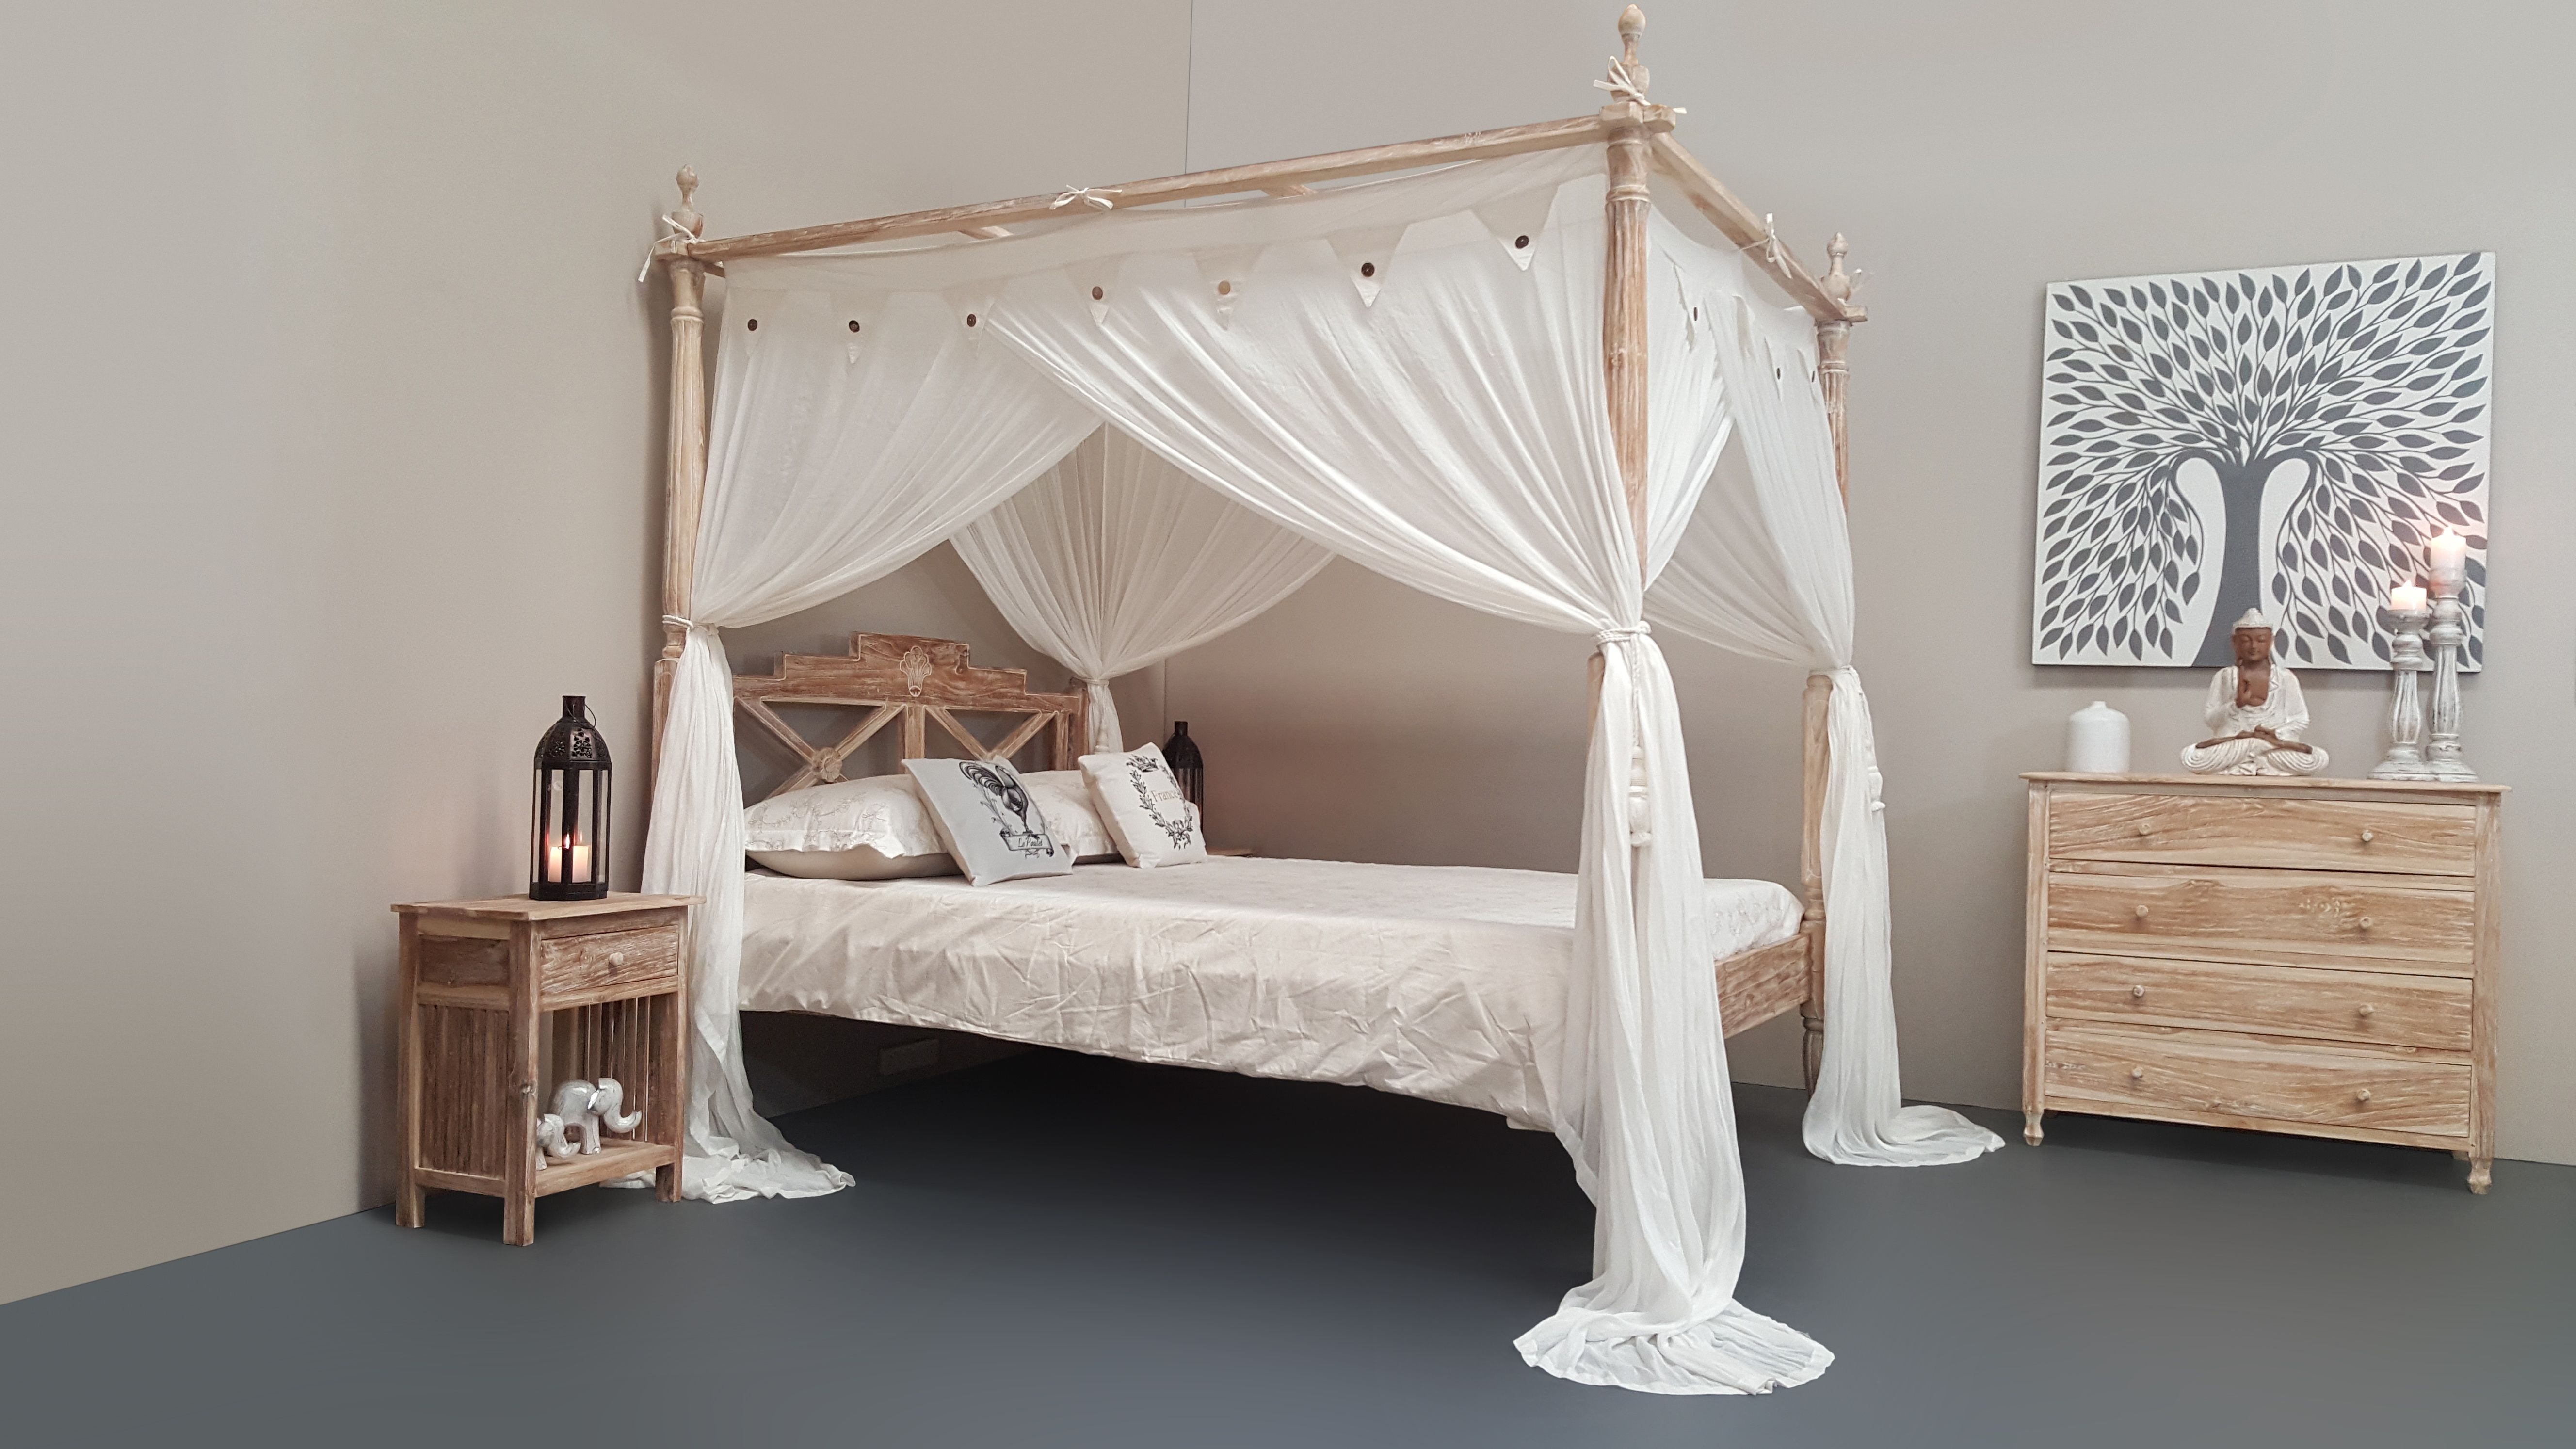 Contact Us On 03 90772357 To Order Your Bed Bali Abundance 13